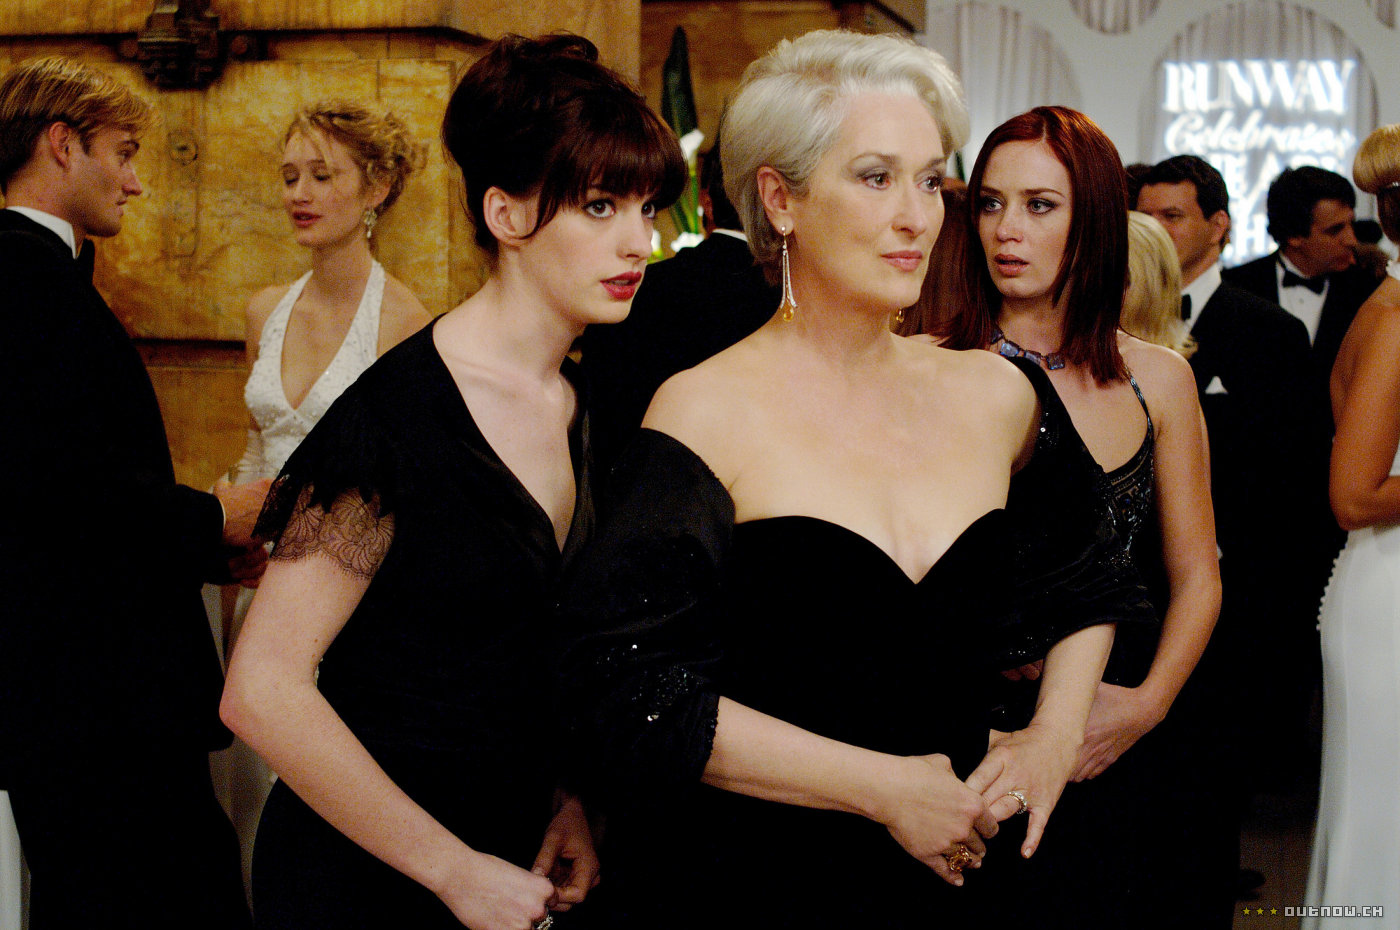 <b>DEVIL WEARS PRADA TH...</b>